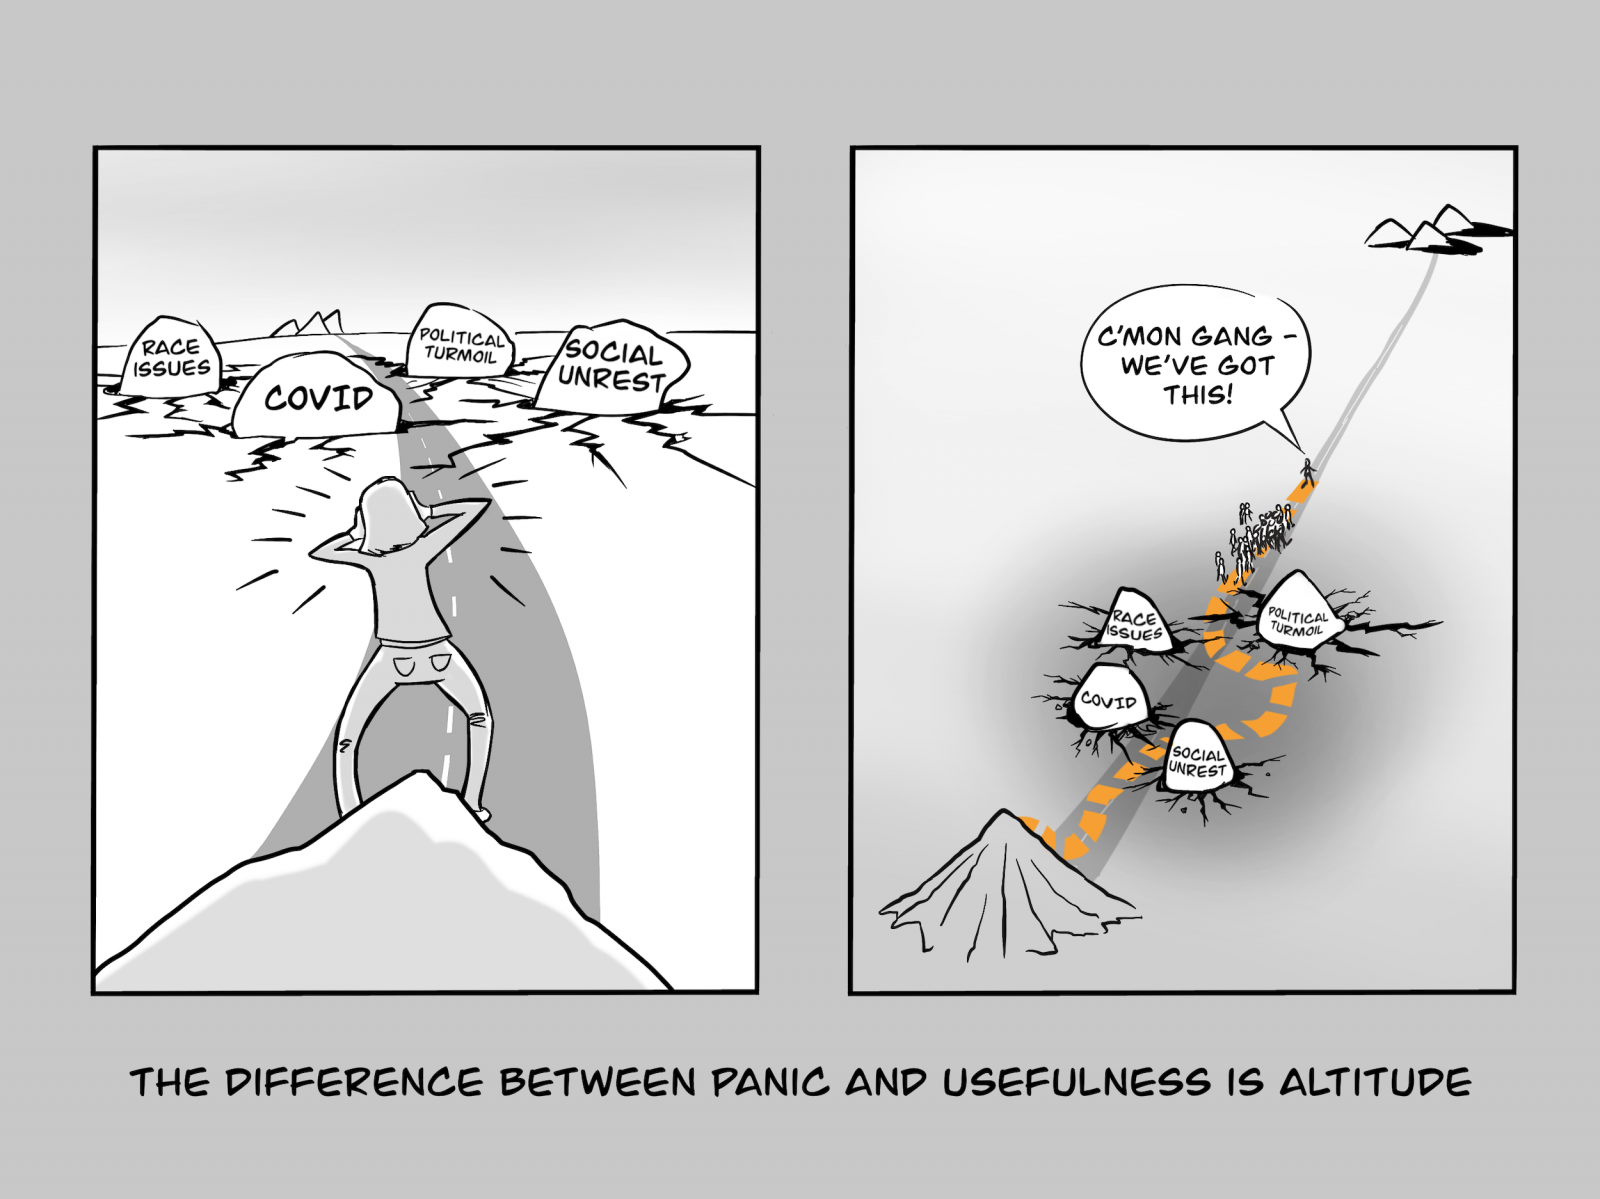 The difference between panic and usefulness is altitude